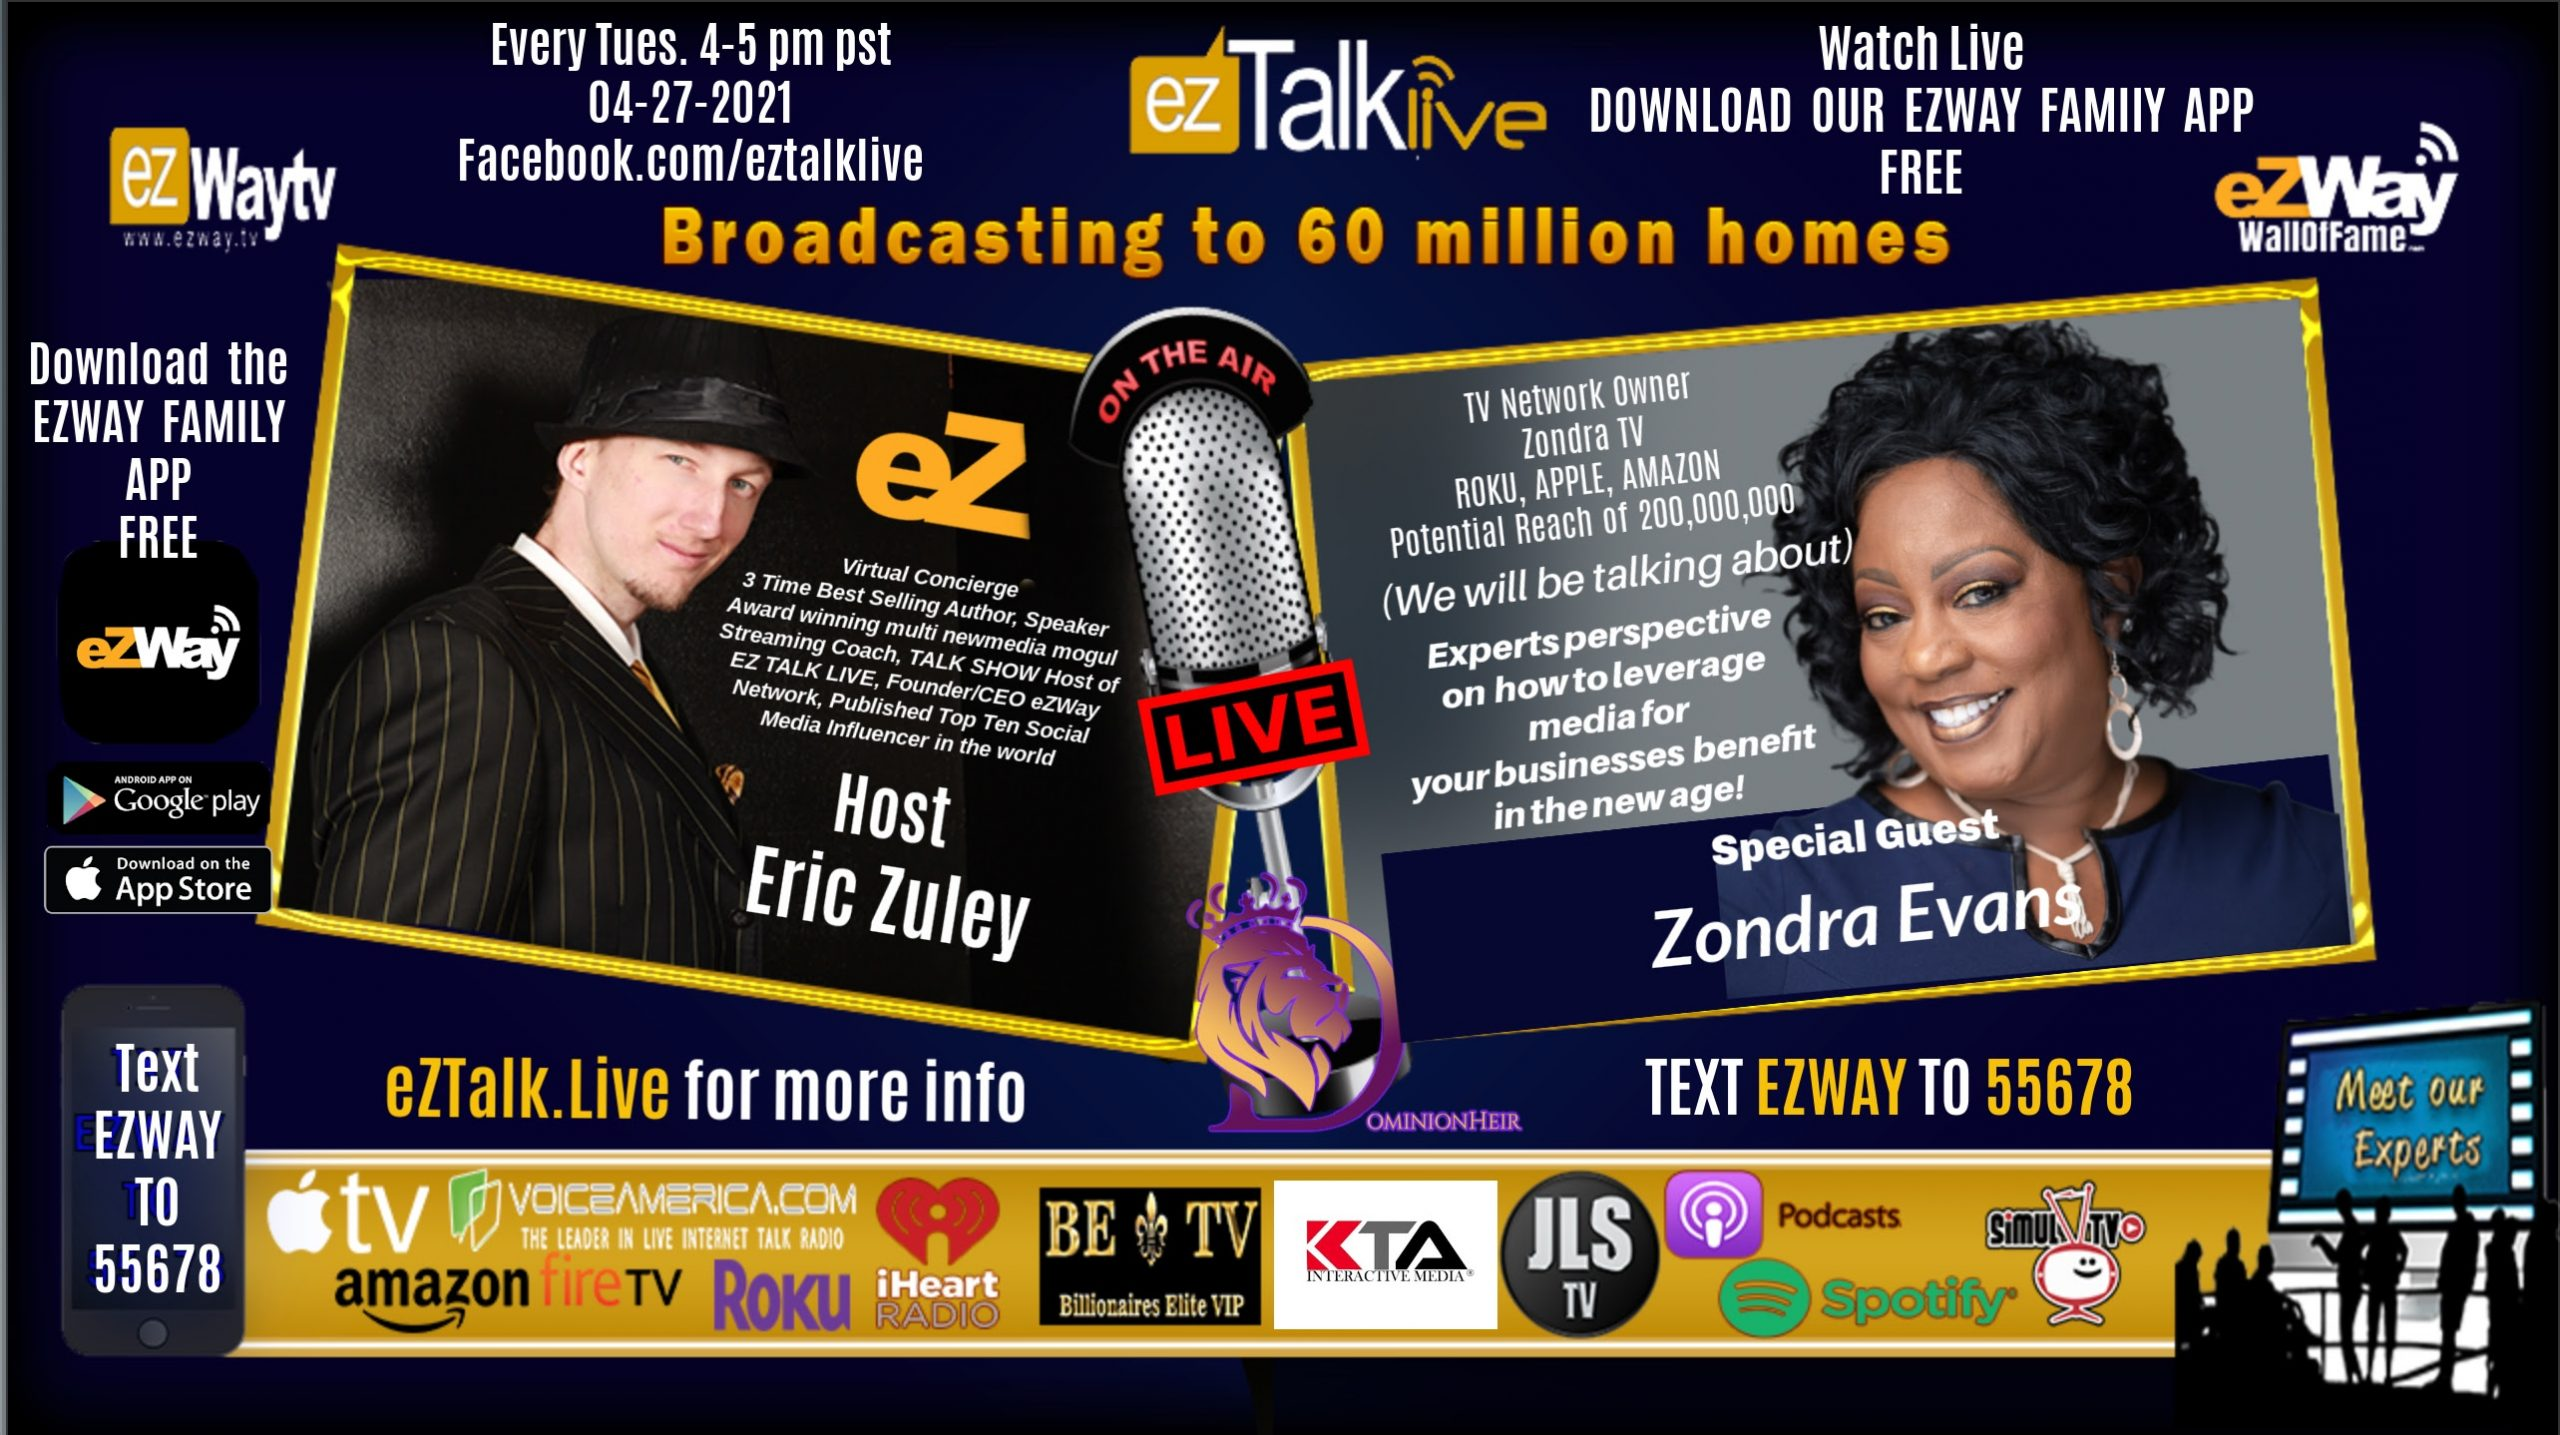 EZ TALK LIVE with Eric Zuley Feat. Distribution Expert Zondra Evans